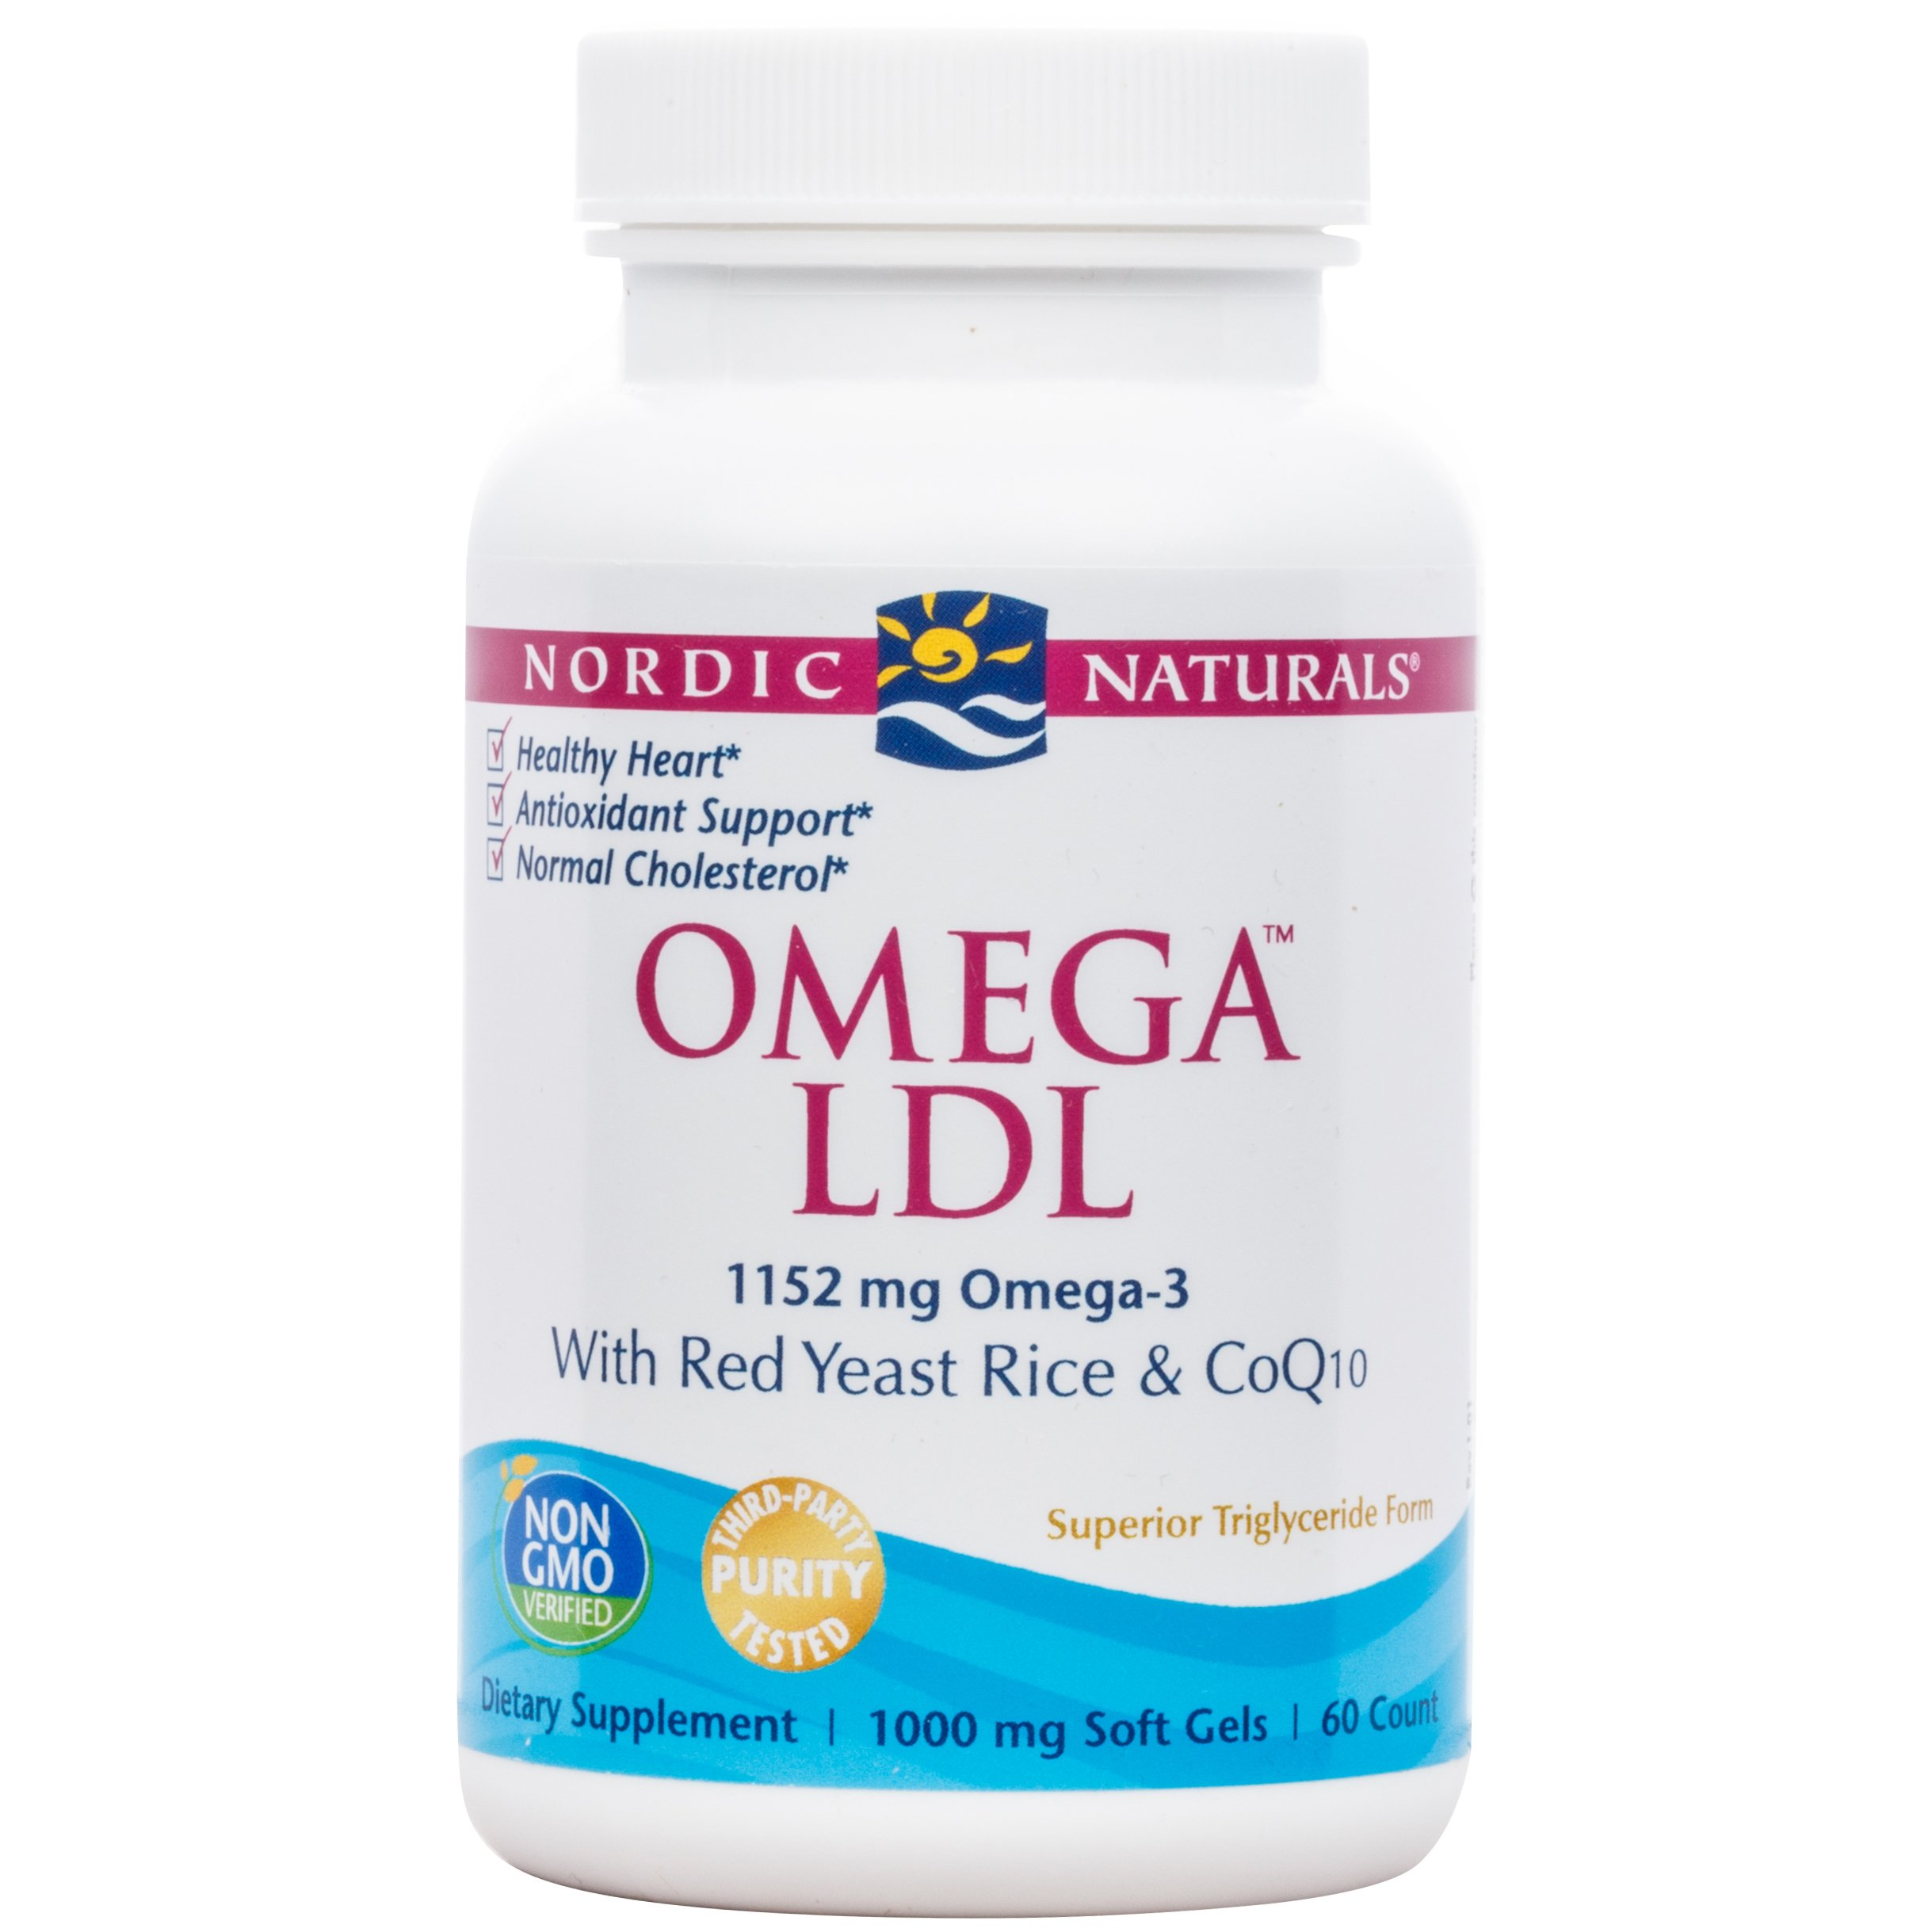 Nordic Naturals - Omega LDL, With Red Yeast Rice & CoQ10, 60 Soft Gels (FFP)